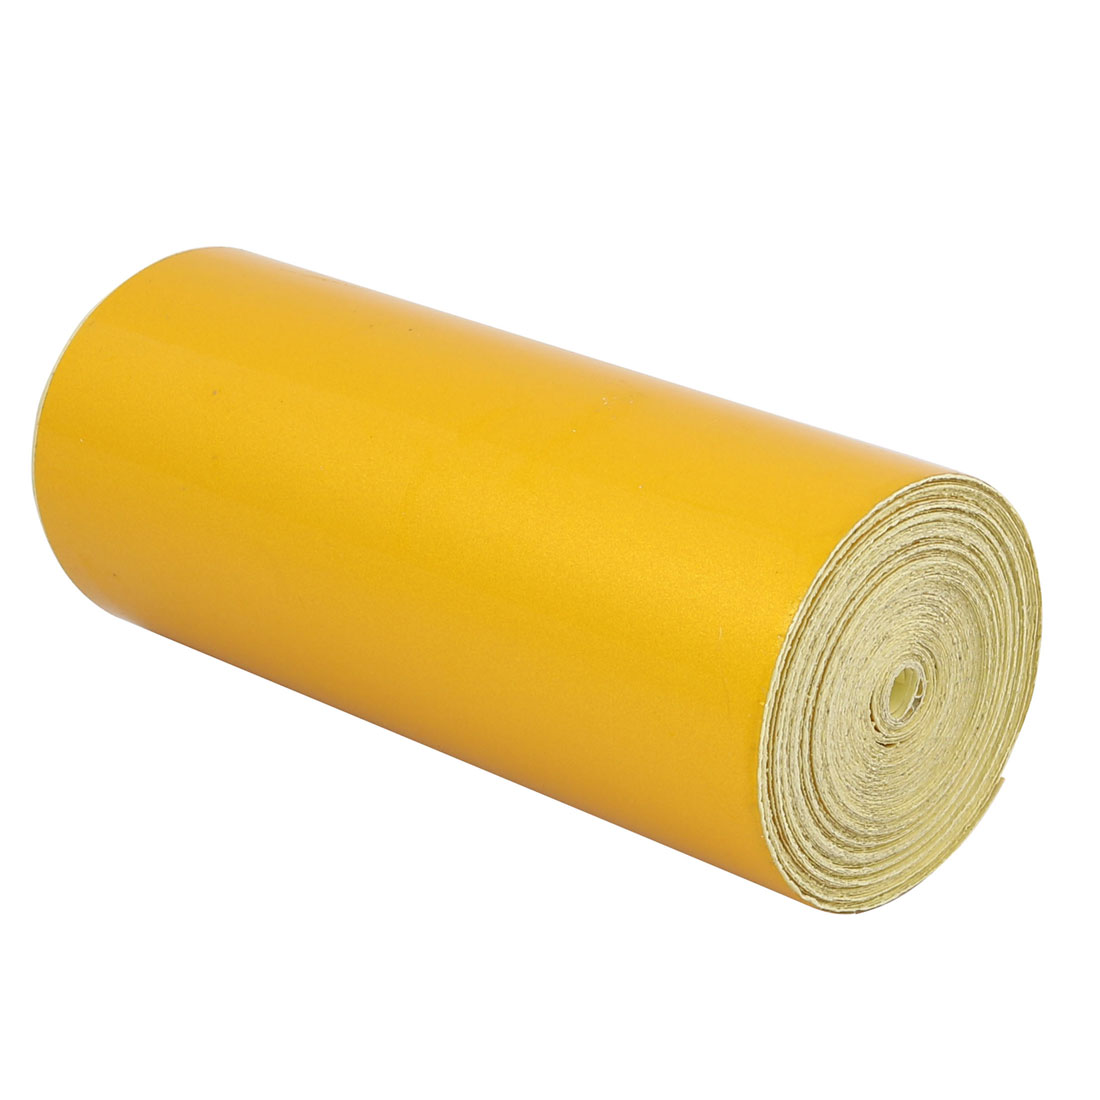 Single Sided Adhesive Reflective Warning Tape Yellow 15M Length 15cm Width